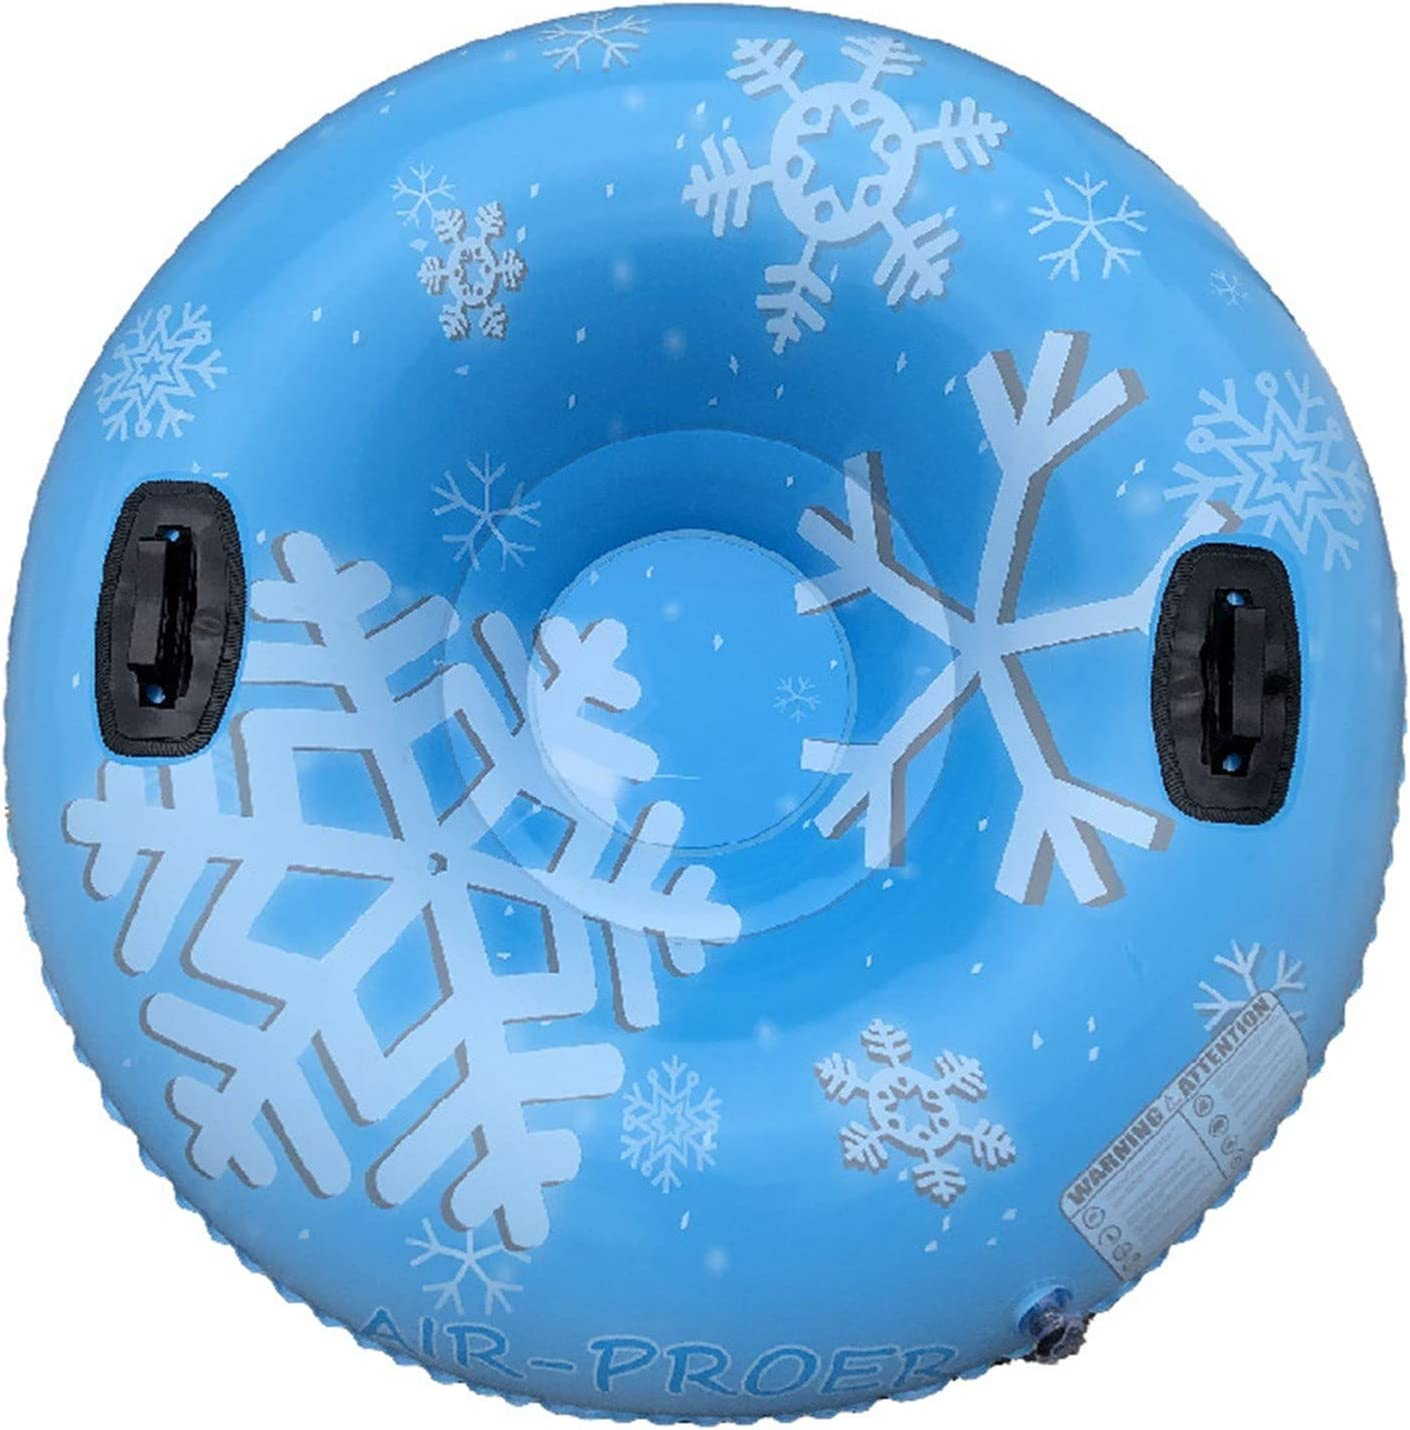 Towable Freeze-Proof /& Wear-Resistant Snow Tube with 2 Handles PVC Tire Tube Winter Thickening Skiing Ring 5665 Snow Tubes for Sledding Kids /& Adults Heavy Duty 47 Outdoor Inflatable Snow Sled